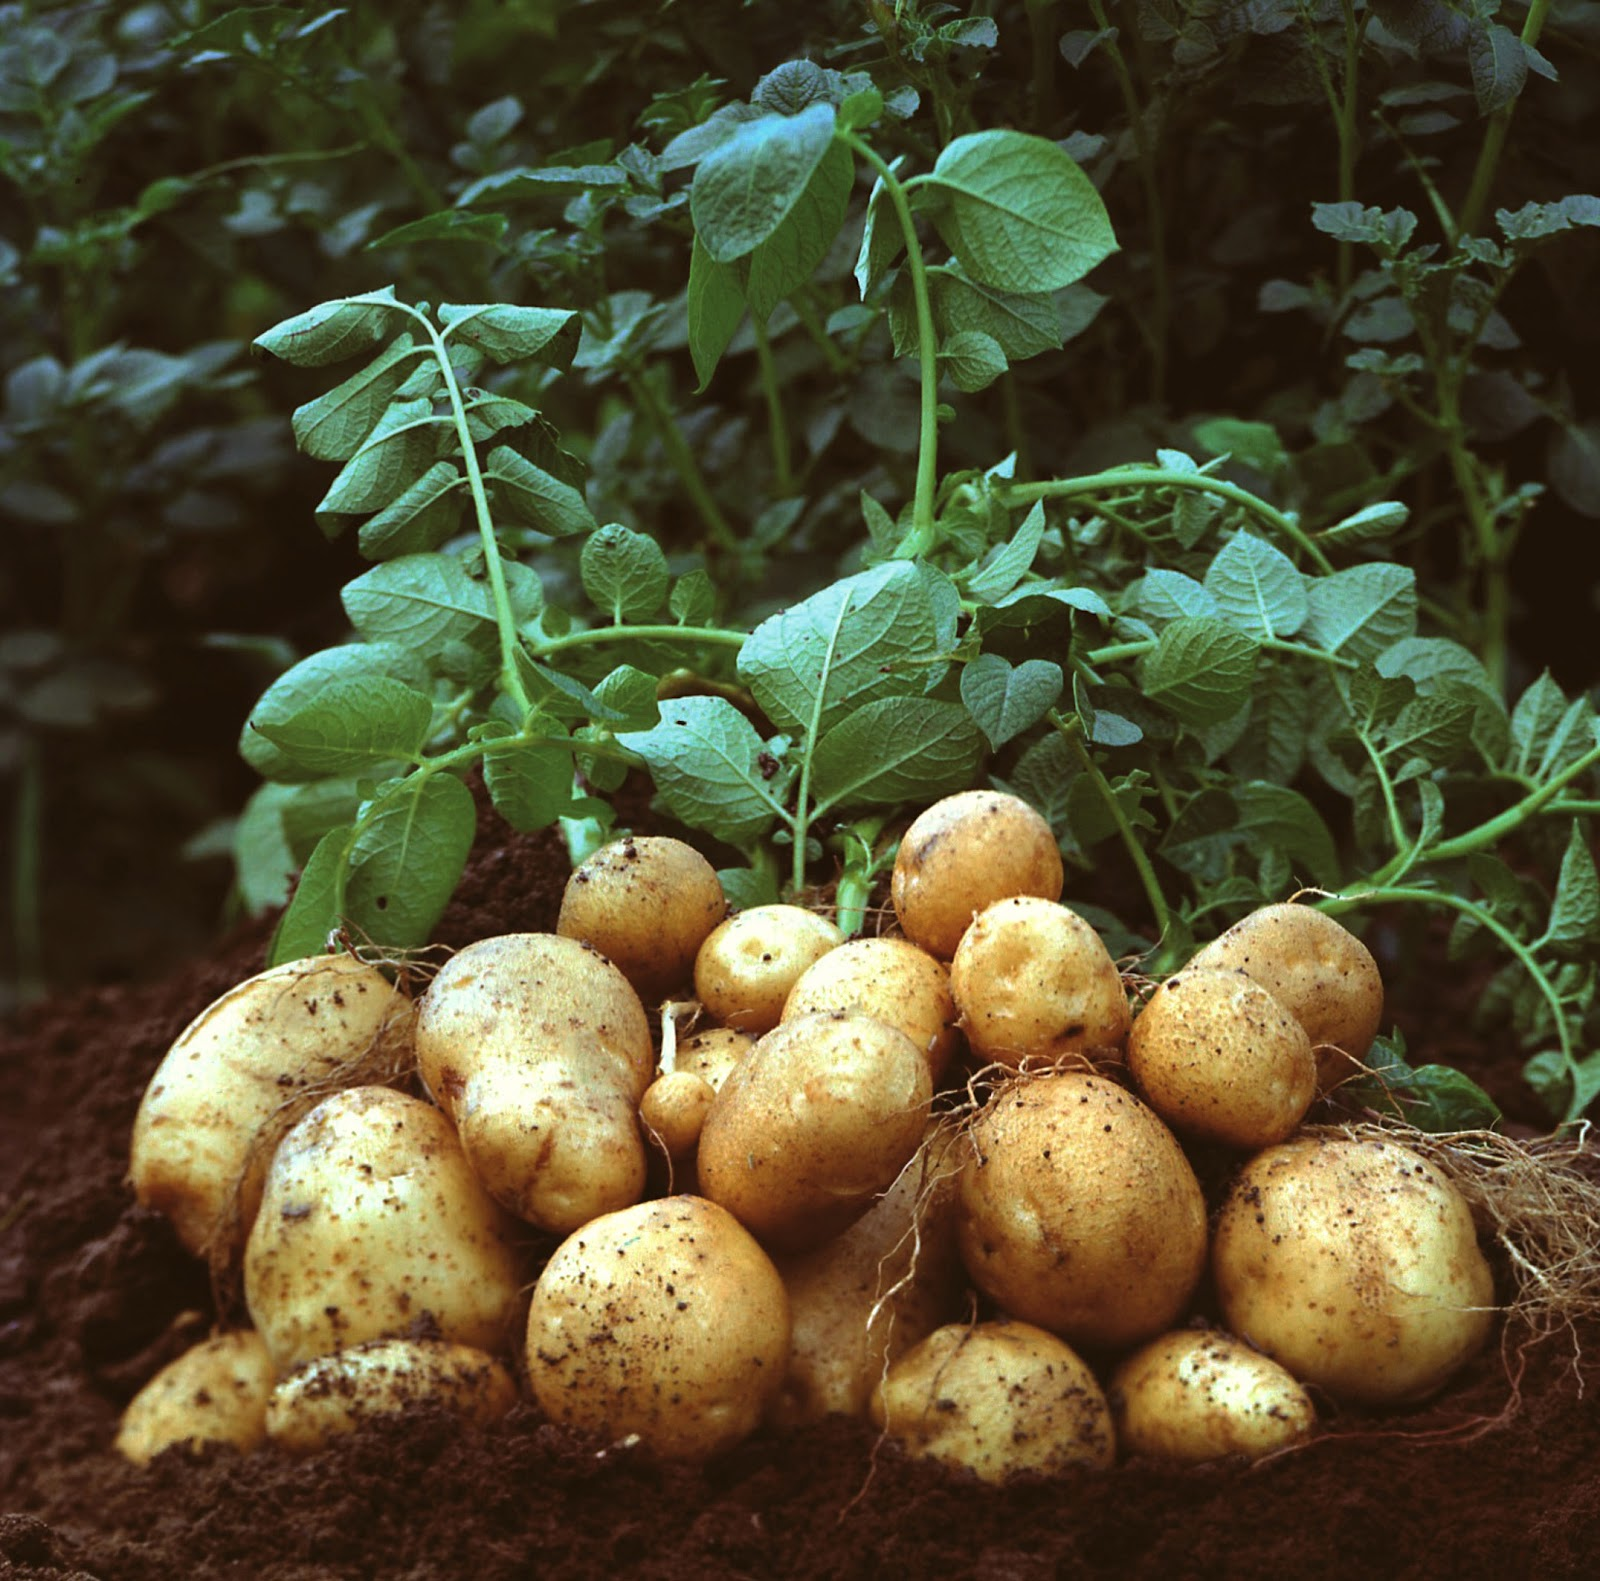 Growing Potatoes as a survival crop